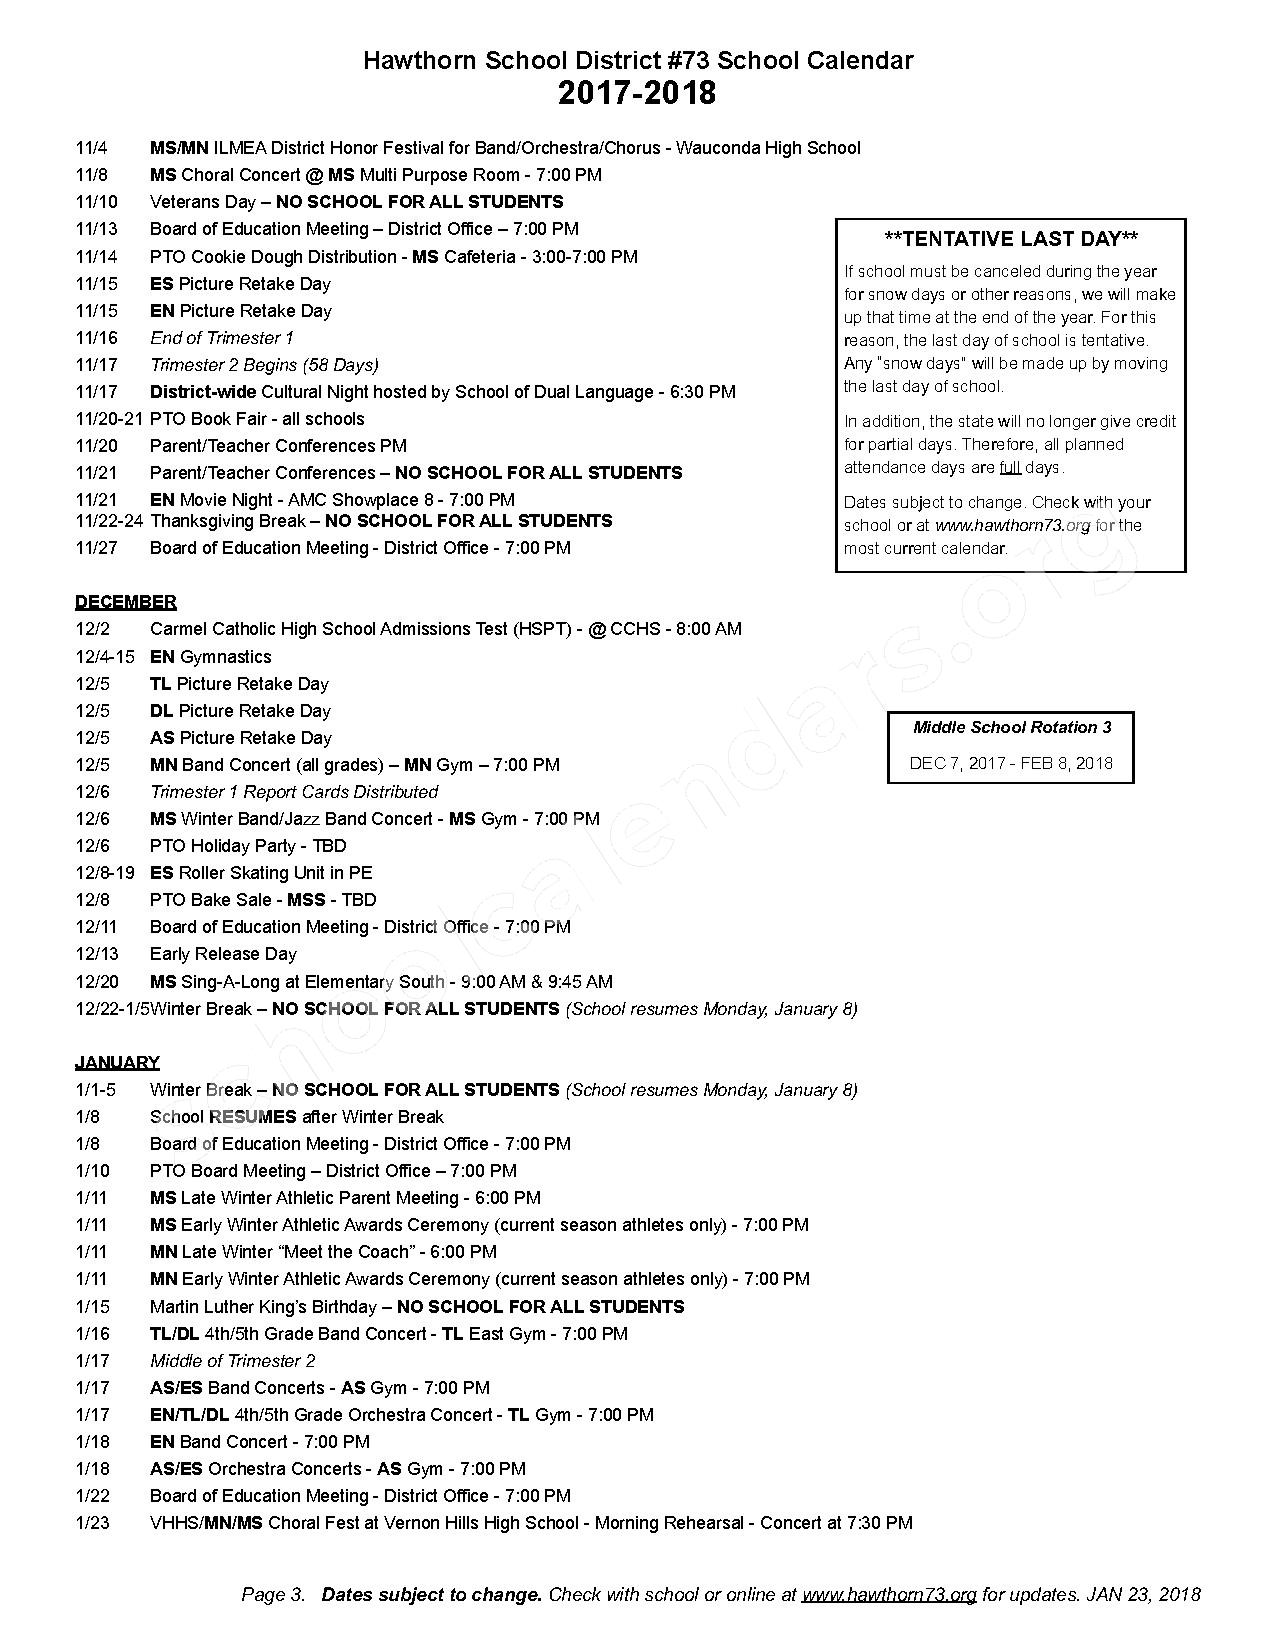 2017 - 2018 Detailed School Calendar – Hawthorn School District 73 – page 3